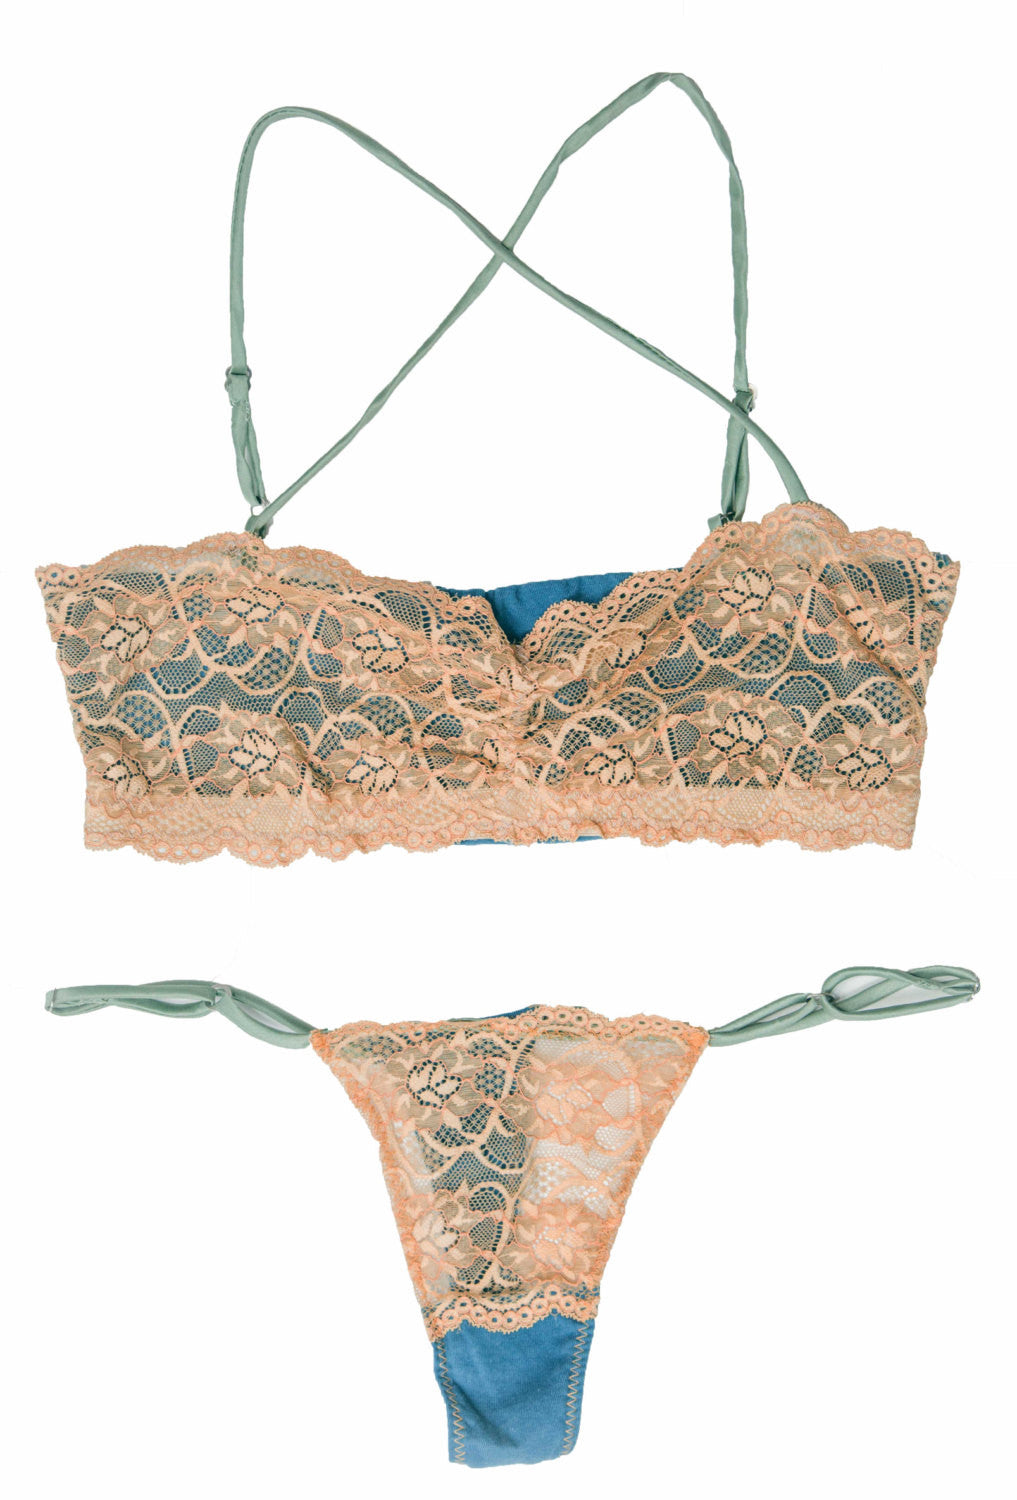 Larkspur - Elsie - Organic Cotton and Lace Bra and Thong Set - Indigo/Tobacco